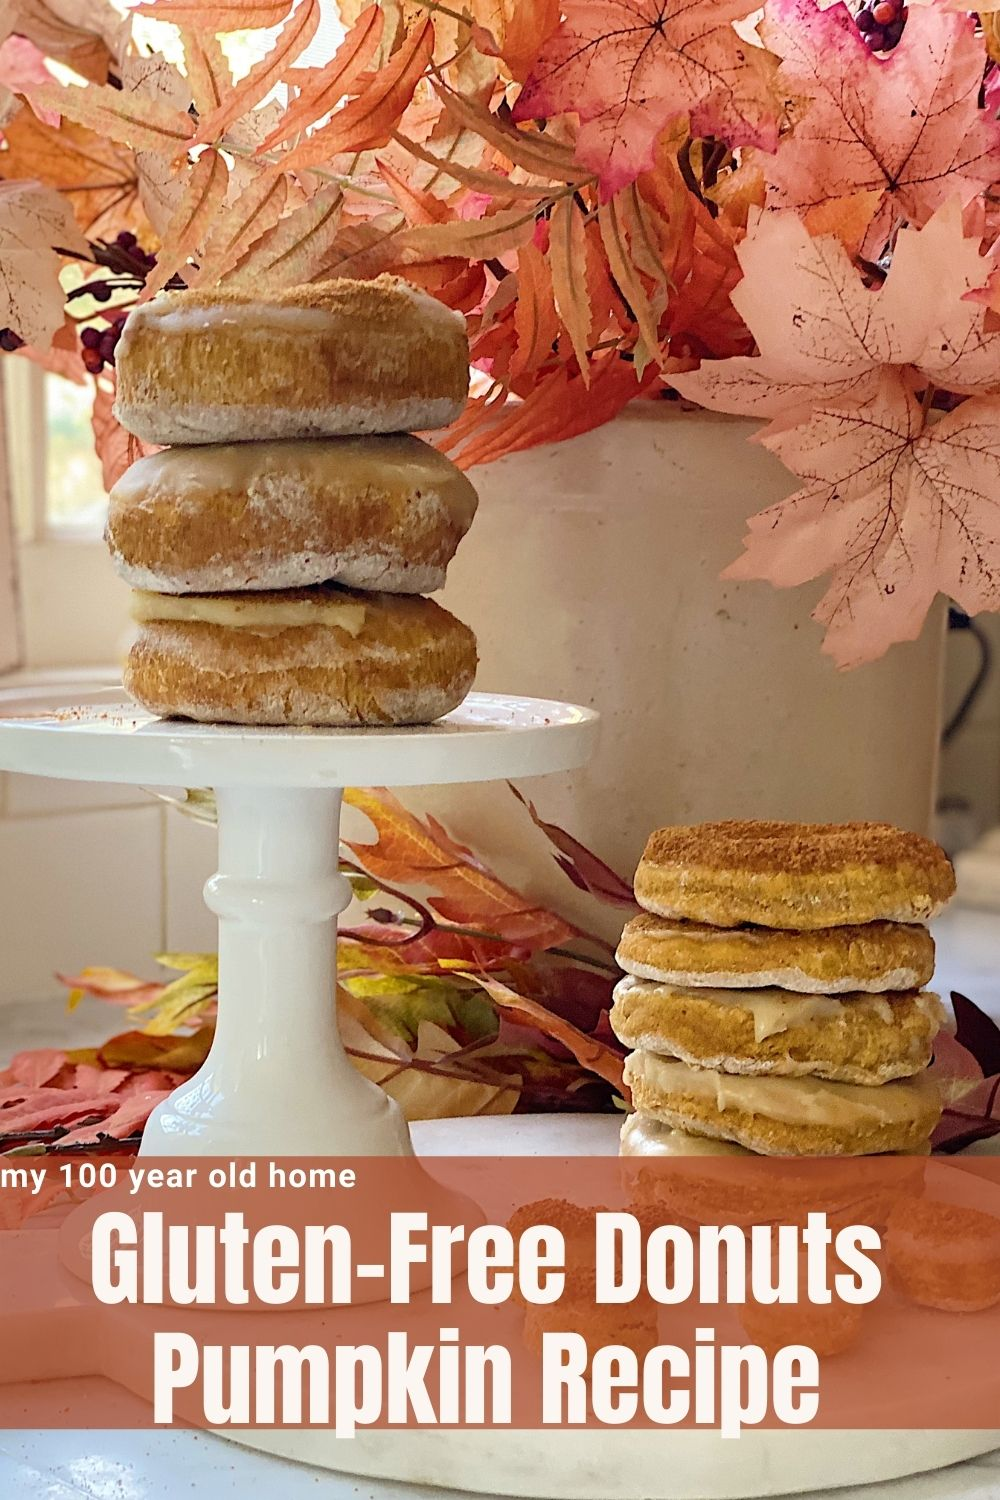 Pumpkin Gluten-Free Donuts are an incredible way to start your day. Nothing says cozy and homey like pumpkin, right?